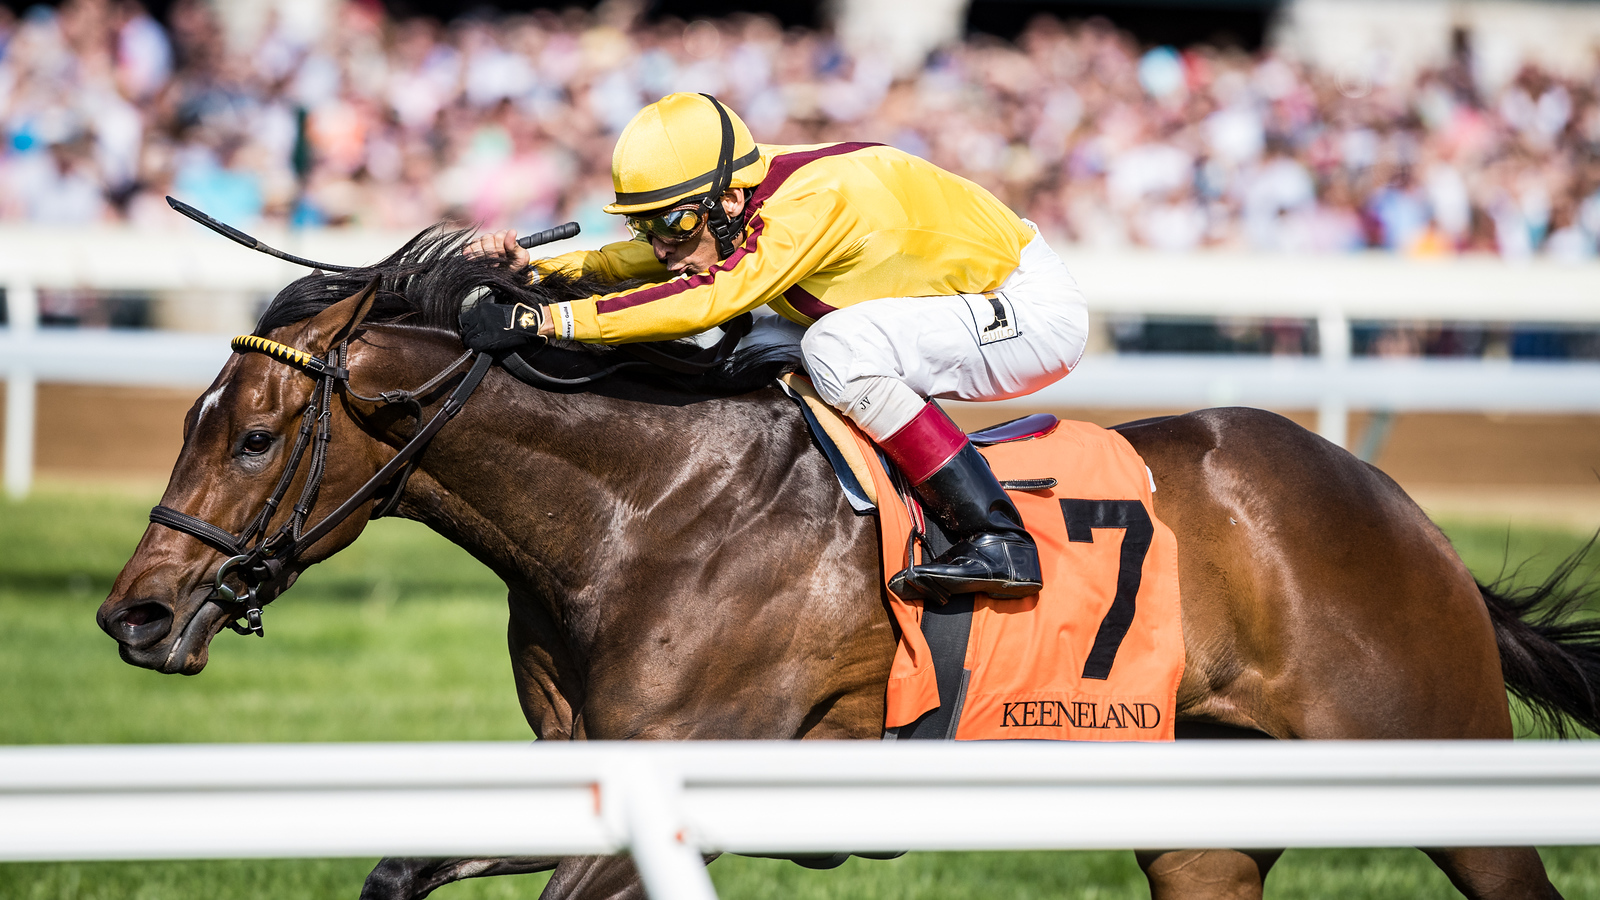 Lady Aurelia (Scat Daddy), John Velazquez up, wins the Giant's Causeway Stakes at Keeneland 4.15.16. Wesley Ward trainer, Stonestreet Stables owner.